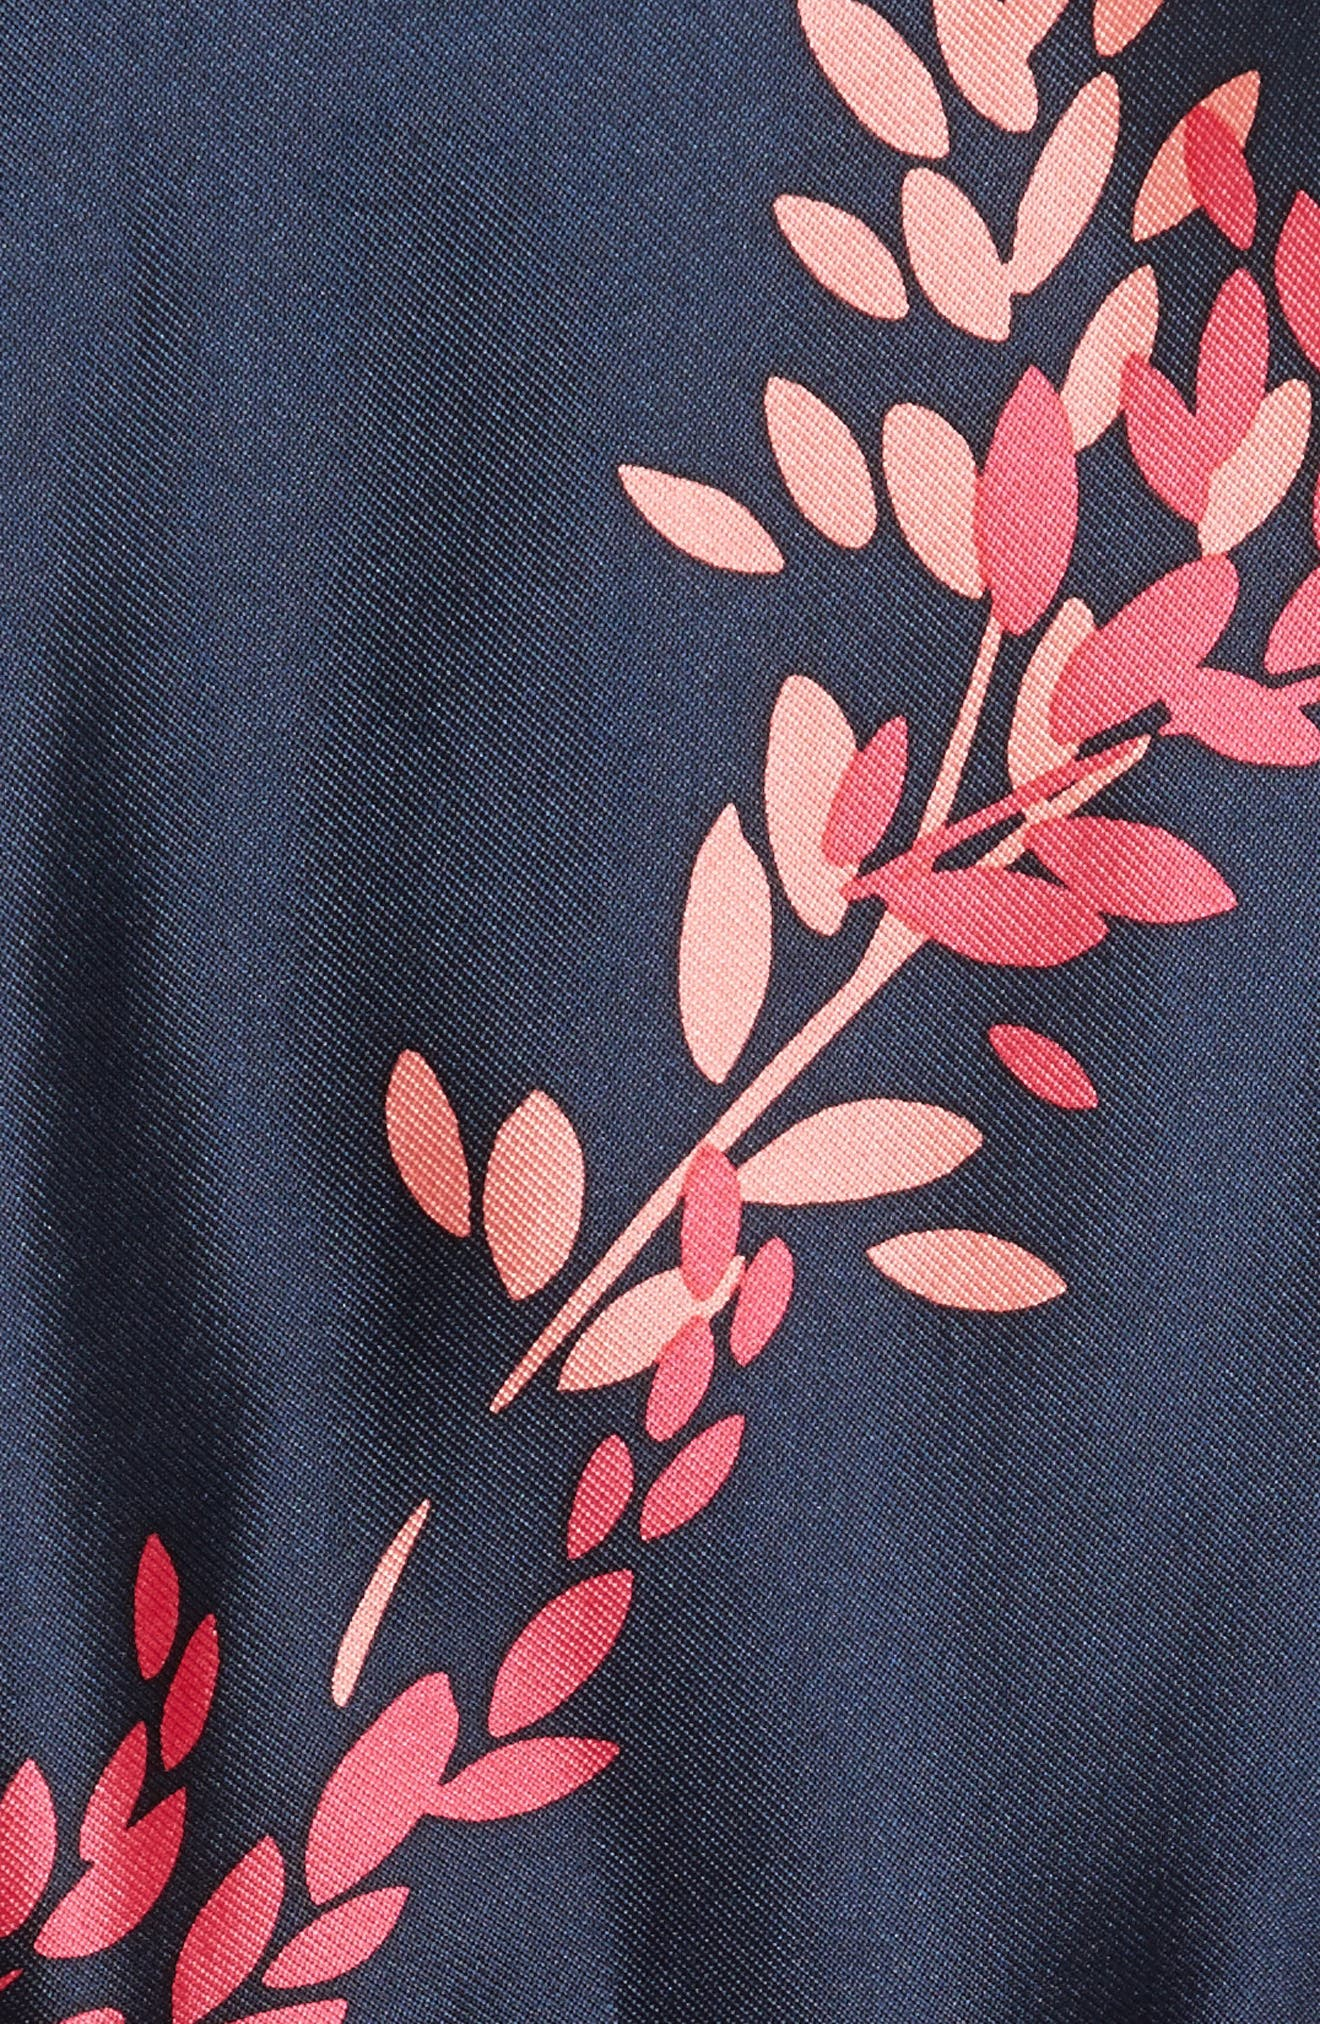 Leaf Print Silk & Cotton Dress,                             Alternate thumbnail 5, color,                             Navy/ Tourmaline